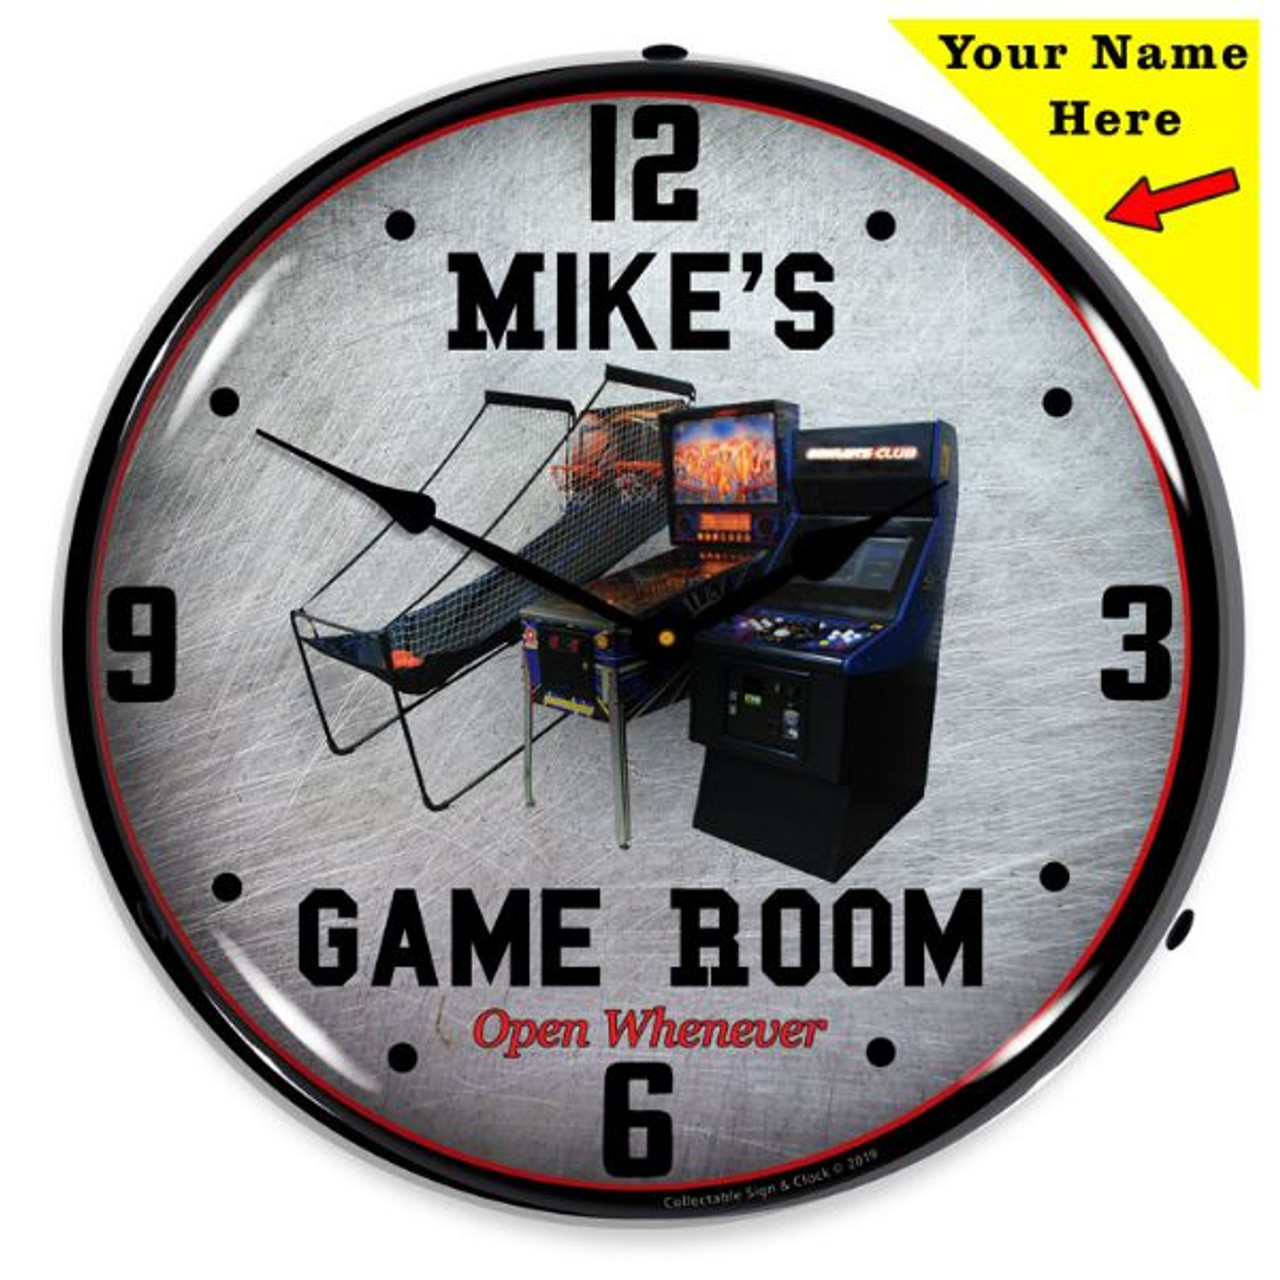 Personalized Game Room LED Lighted Wall Clock 14 x 14 Inches (Add Your Name)